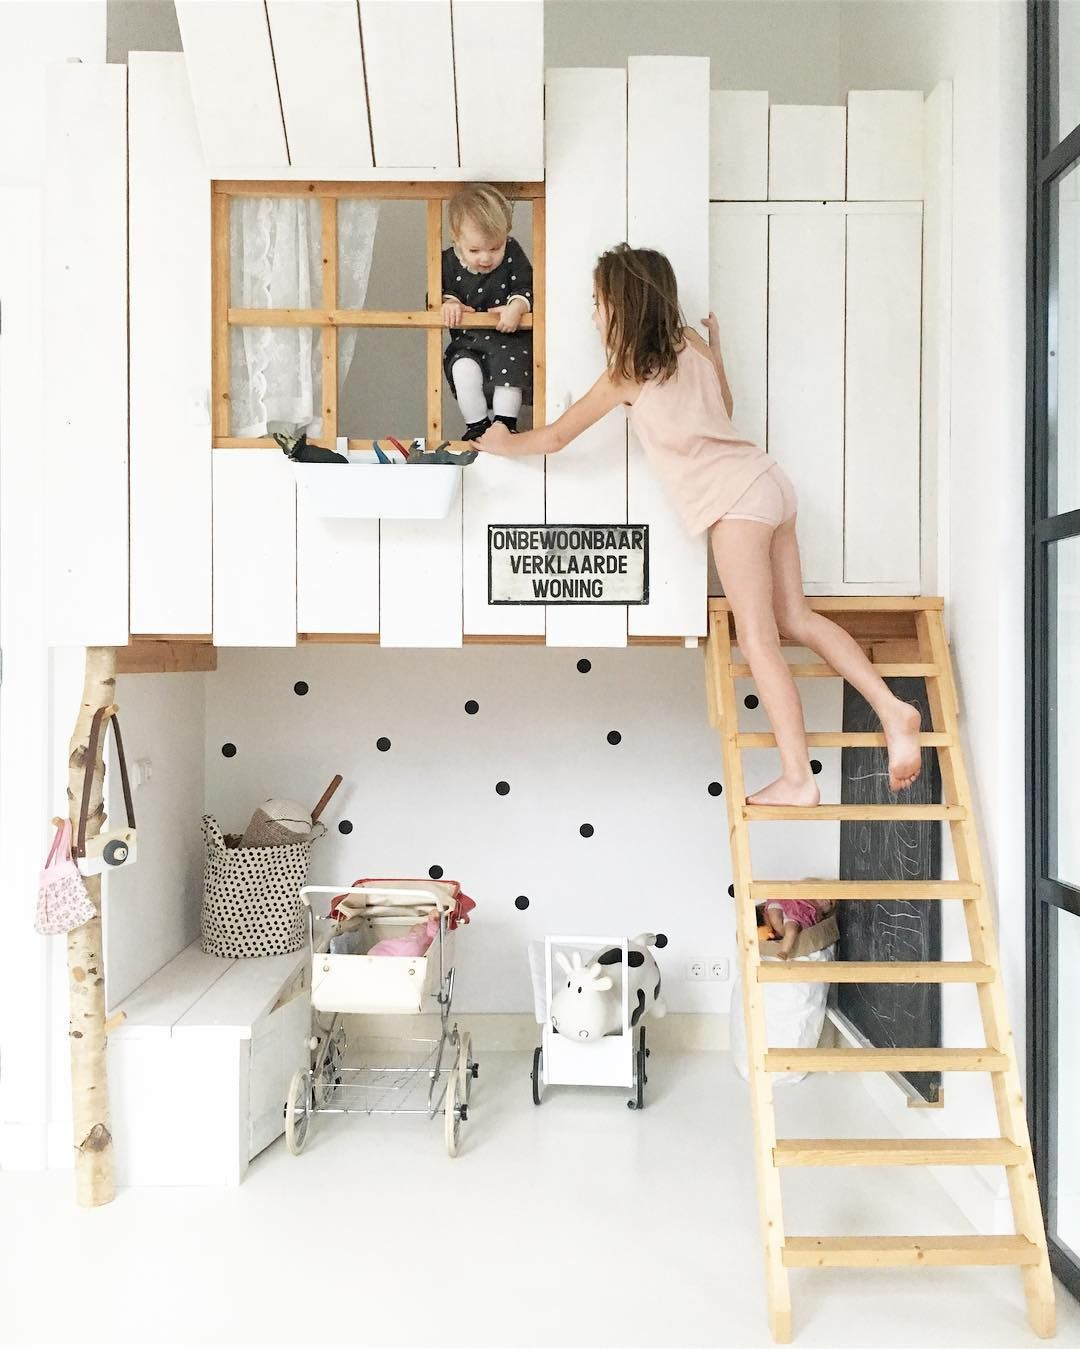 Loft bed ideas for small spaces  Mijn acrobaatjes  KIDS  Pinterest  Playroom Kids bedroom and Room